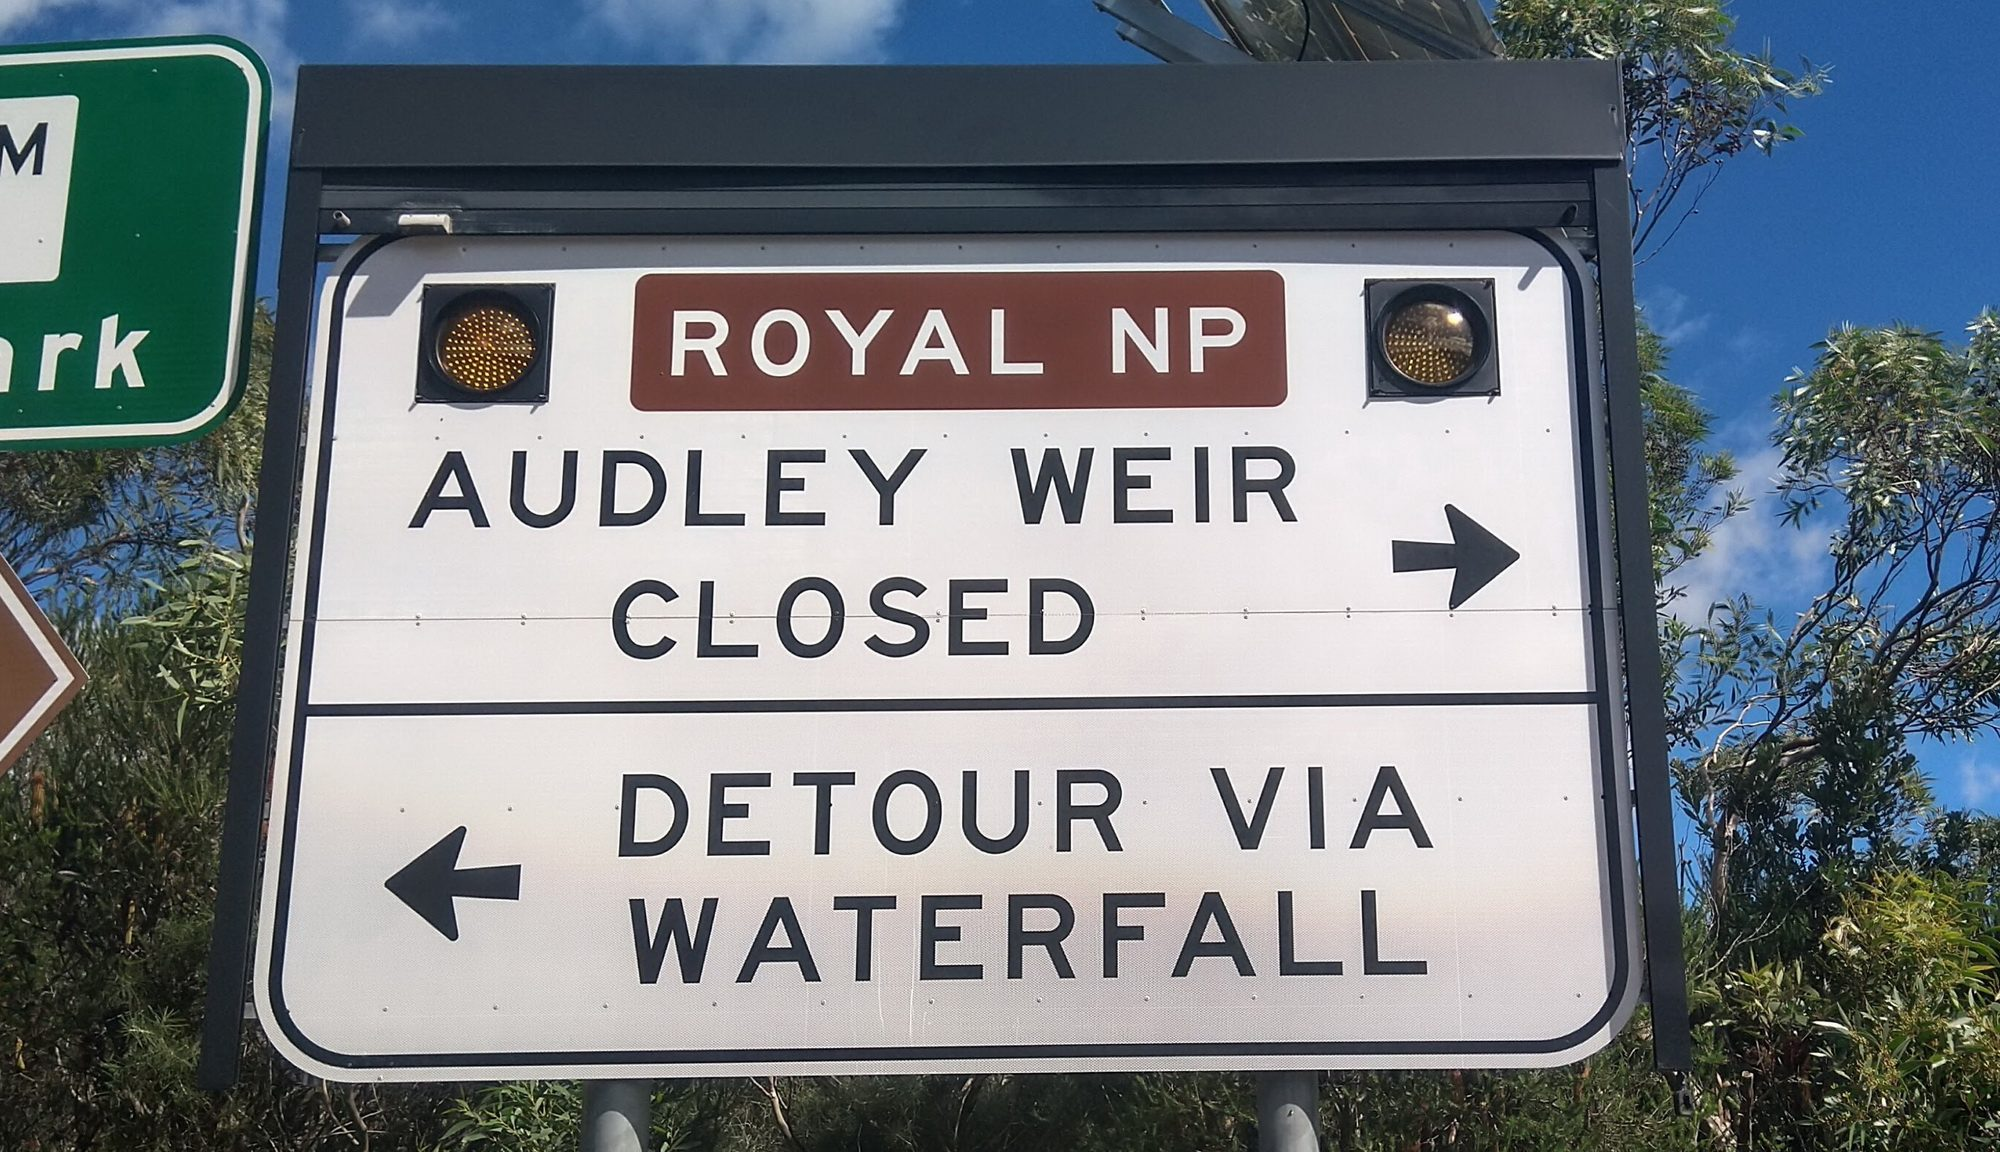 Audley Weir Closed Sign Bundeena Turnoff